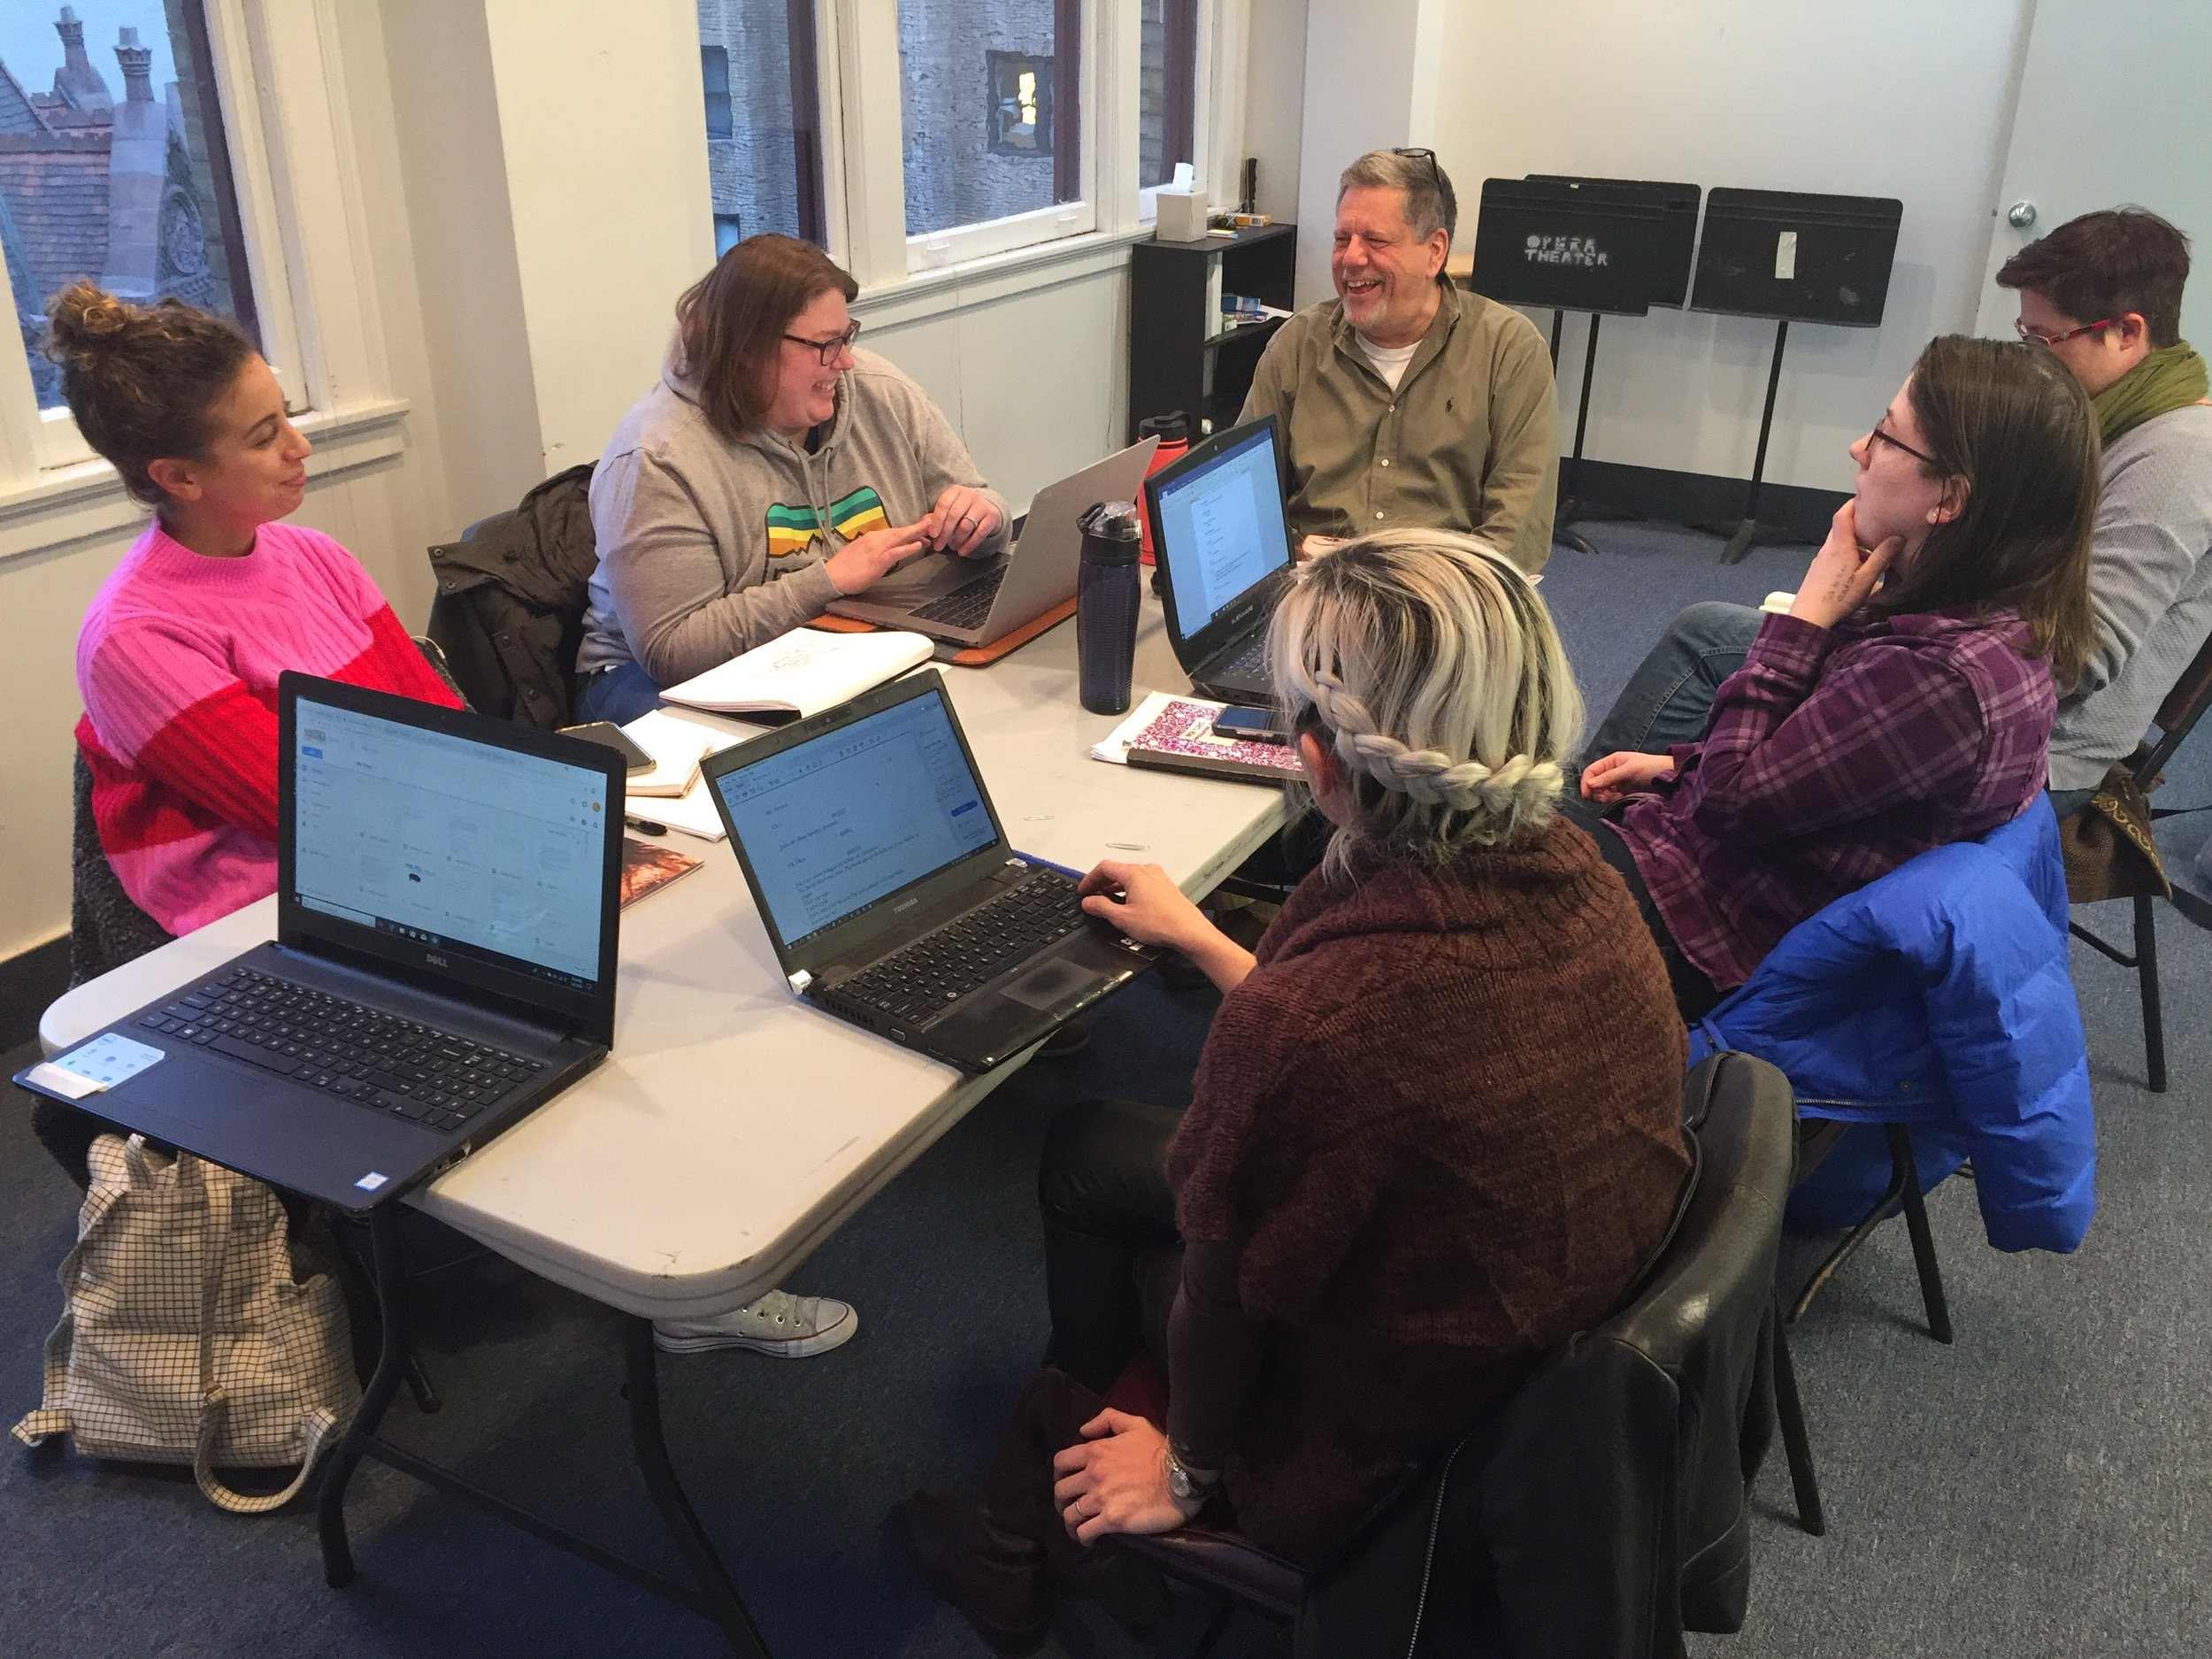 Production meeting; from left around the table to right: costume designer Shelby Kay, scenic designer Meghan Jones, director Kevin Glaccum, props manager Amanda Hatch, production manager Lauren Tracy, sound designer Melissa Dunphy